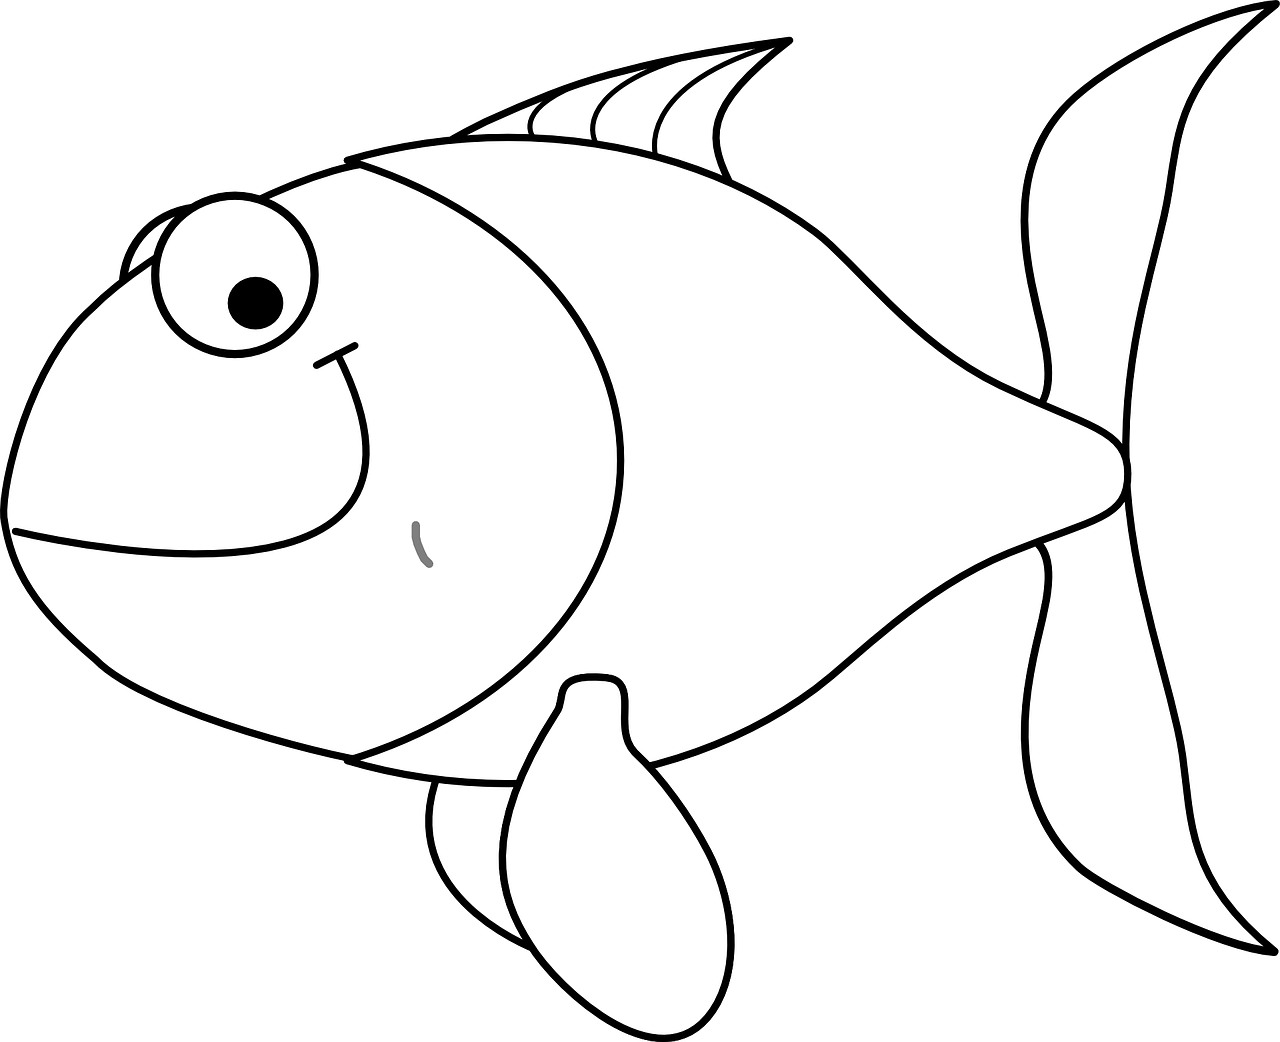 coloring clipart for kids fish coloring pages for kids 14 pics how to draw in 1 for clipart coloring kids